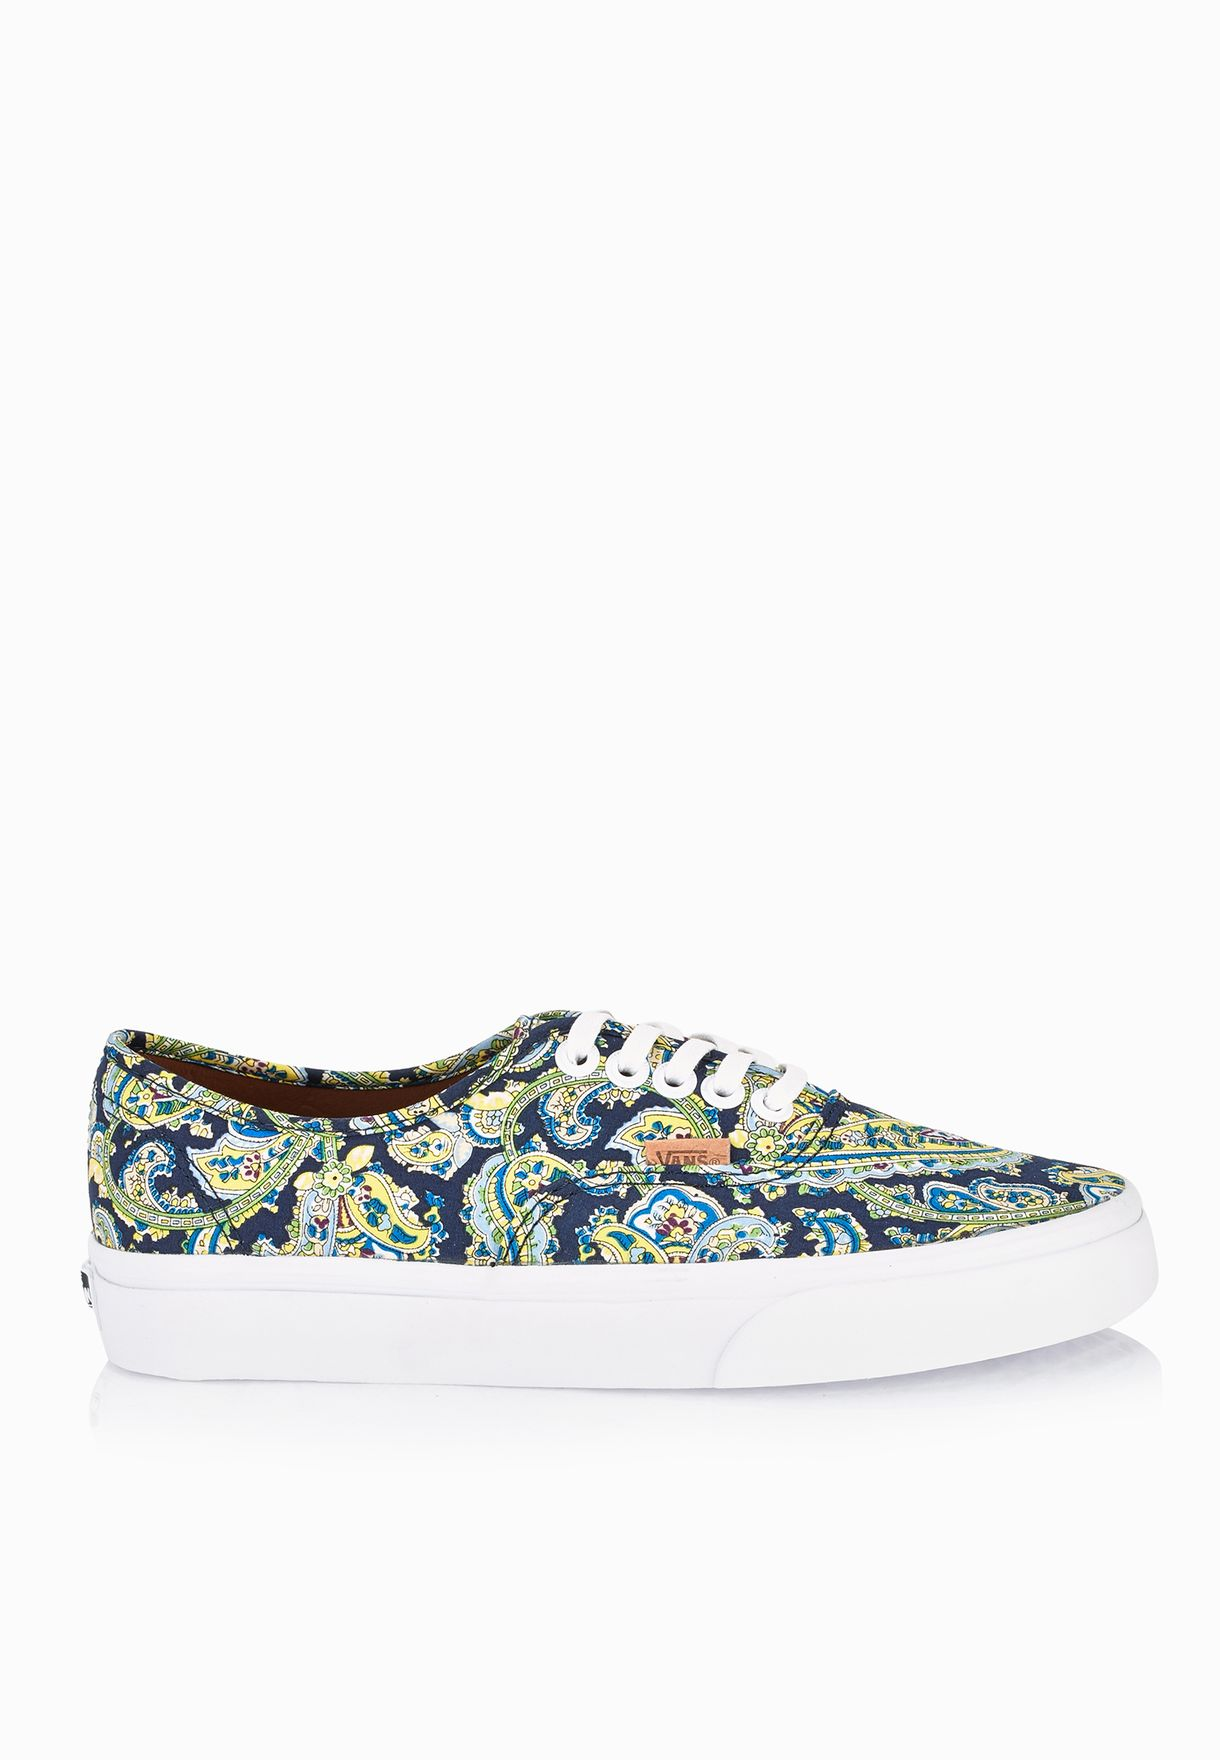 983a7920ee Shop Vans prints Authentic Liberty Print Sneakers for Women in UAE ...